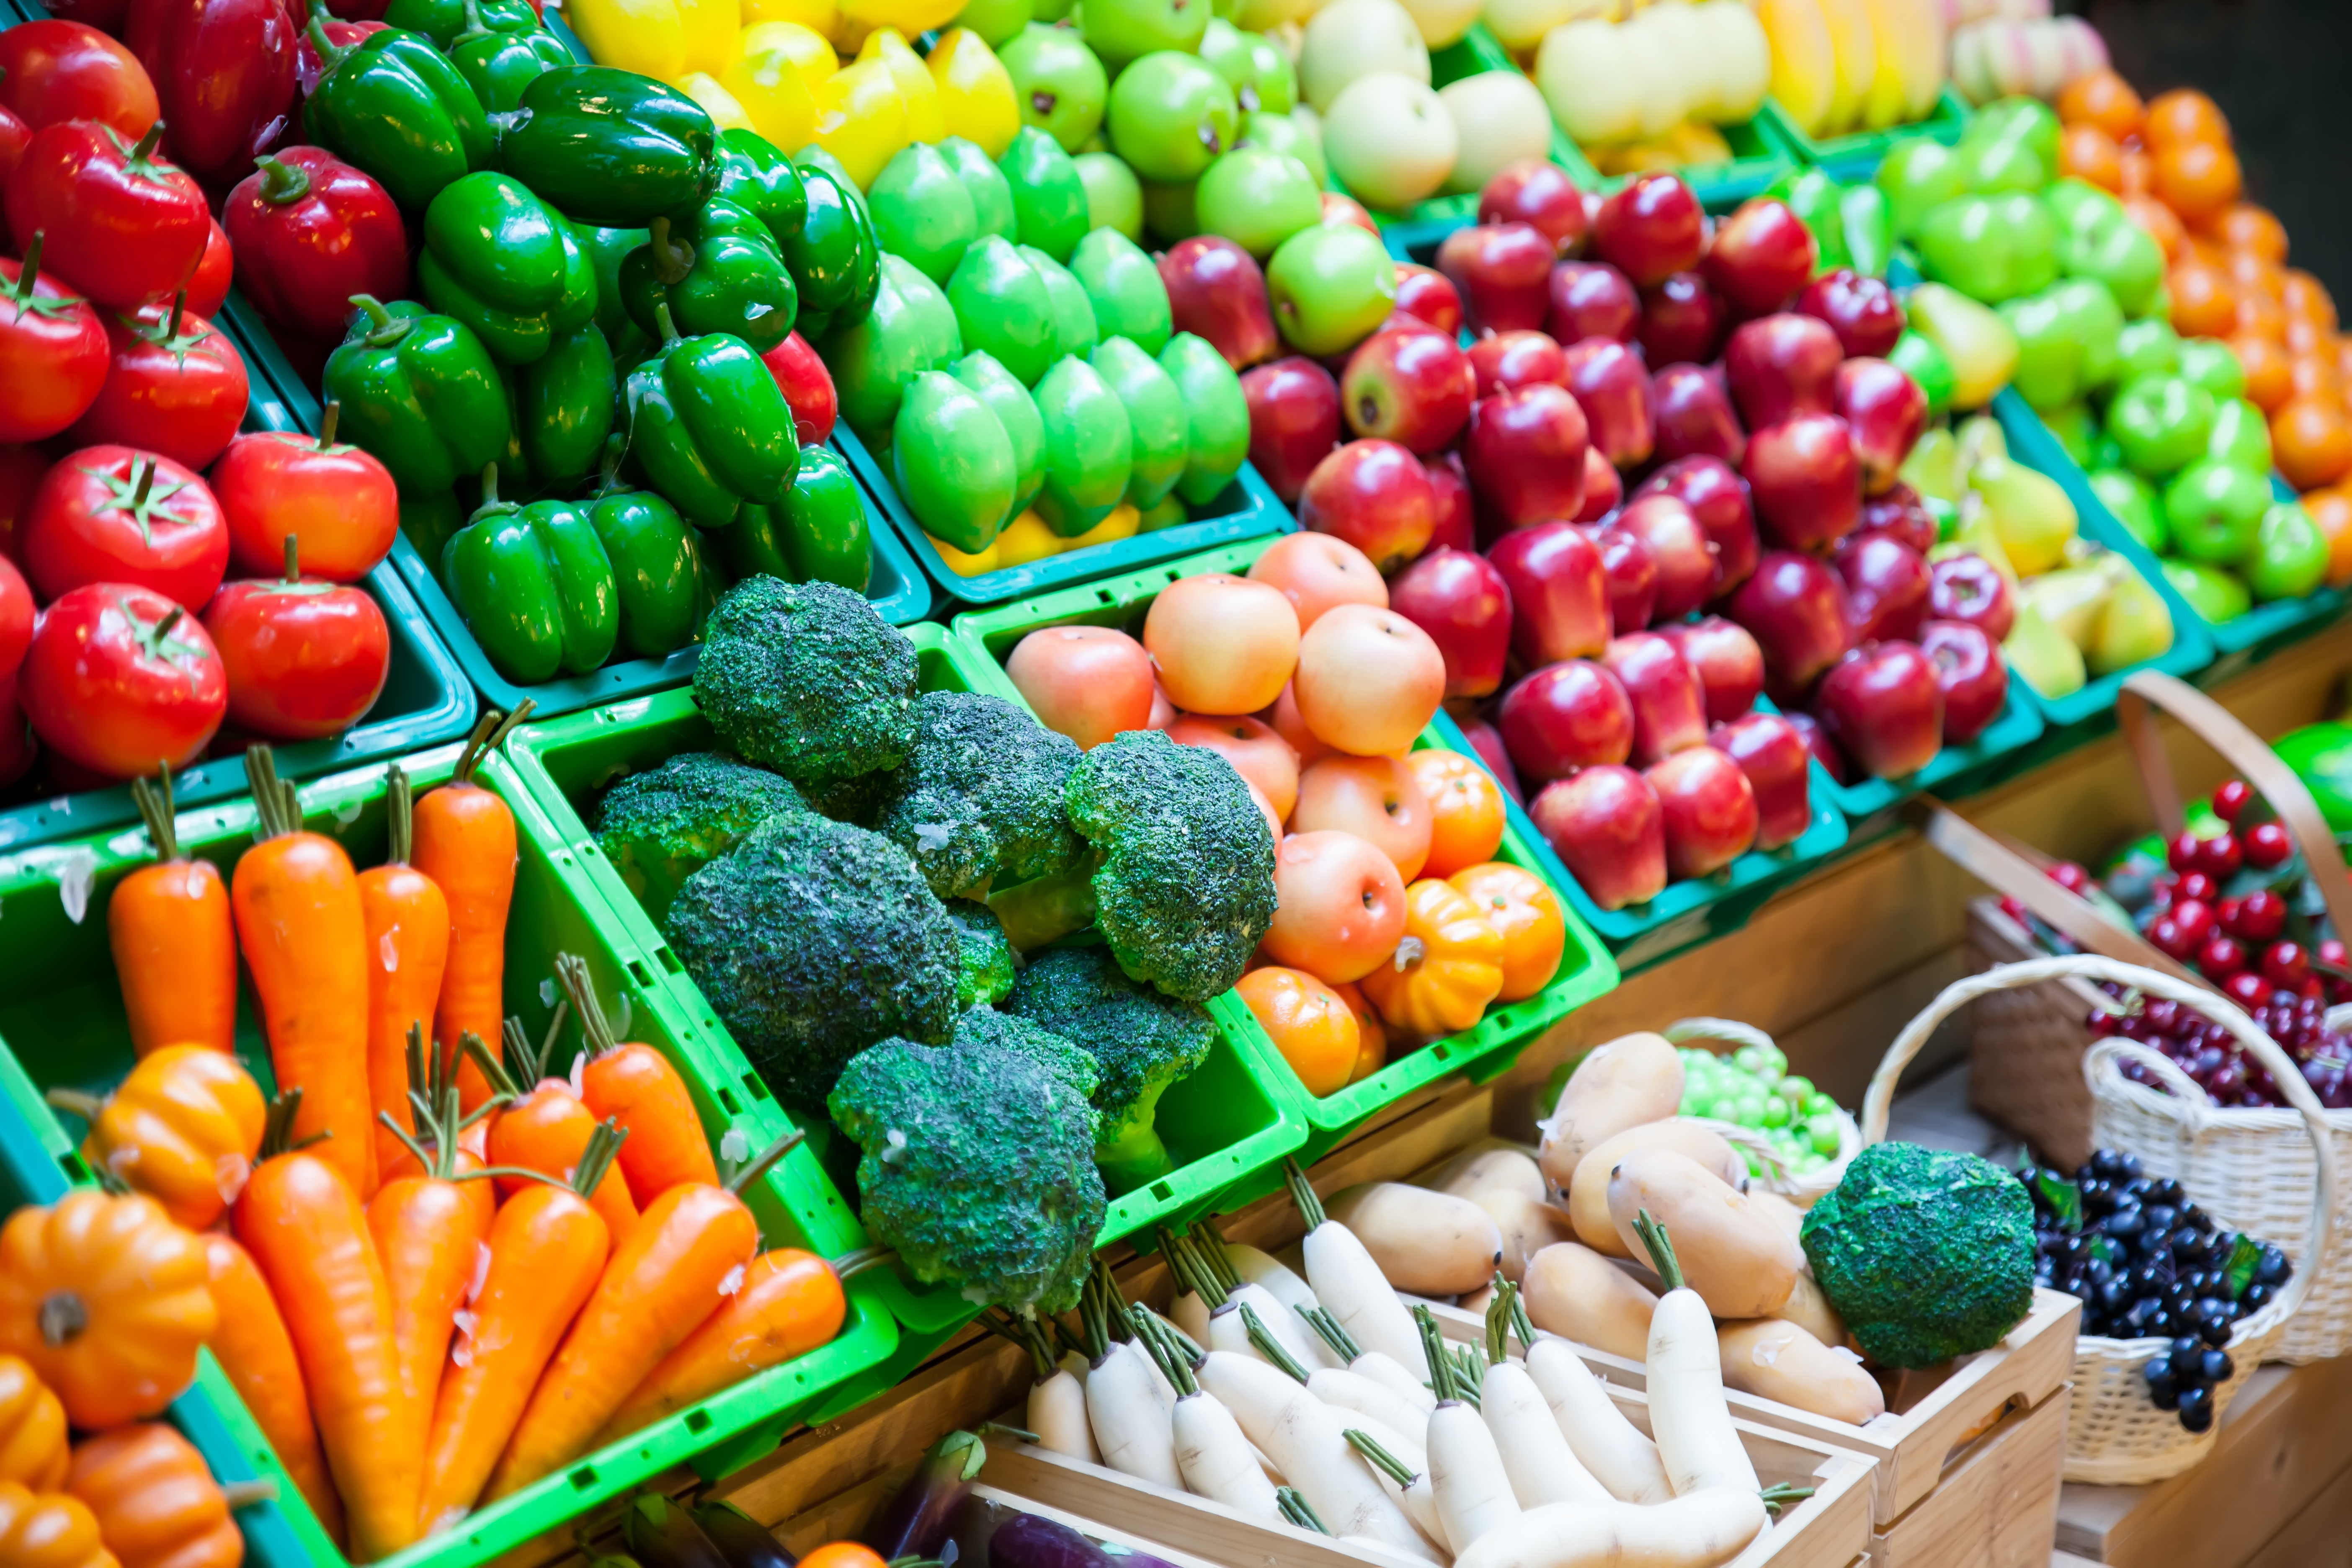 Produce Safety Updates from the FDA